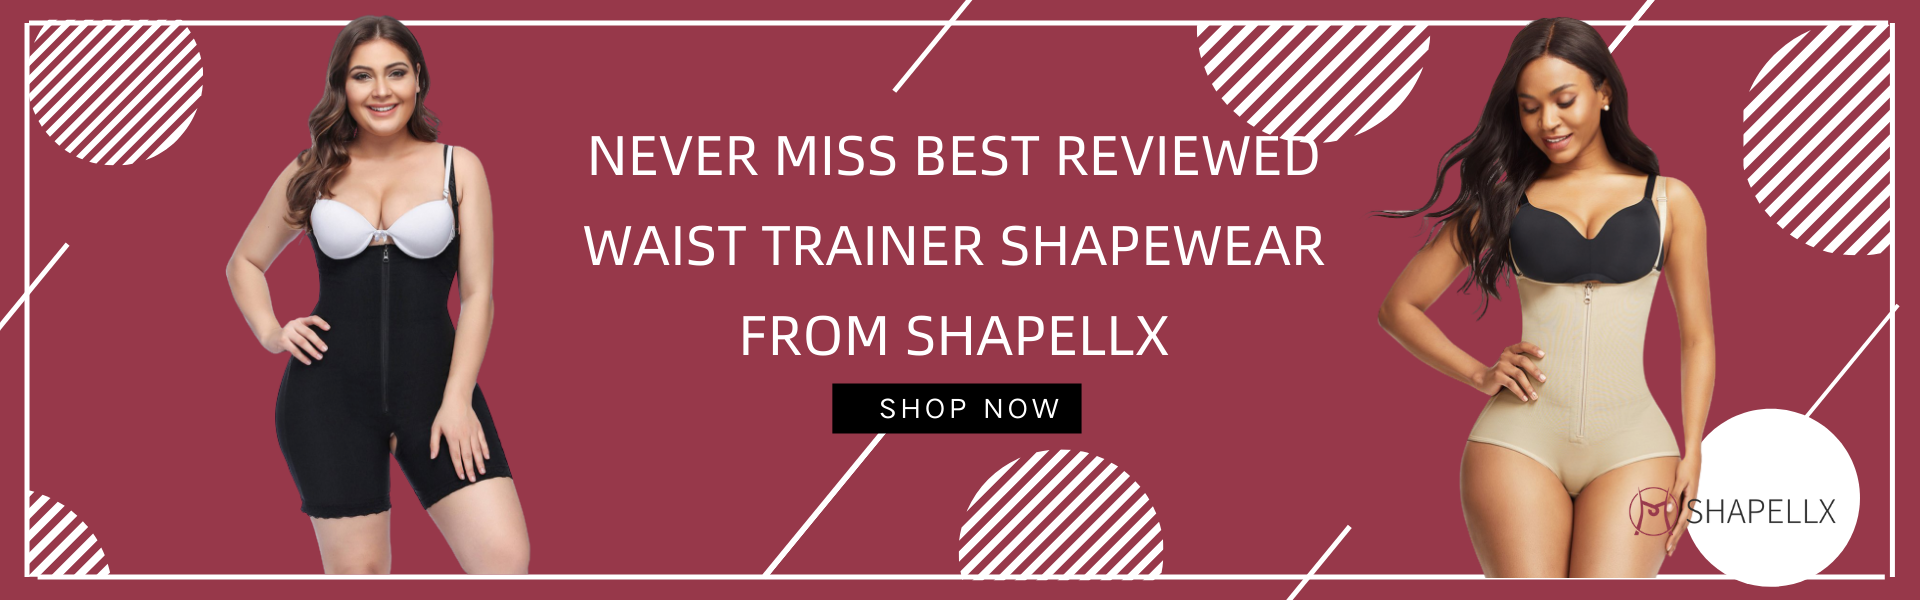 Never Miss Best Reviewed Waist Trainer from Online Shop